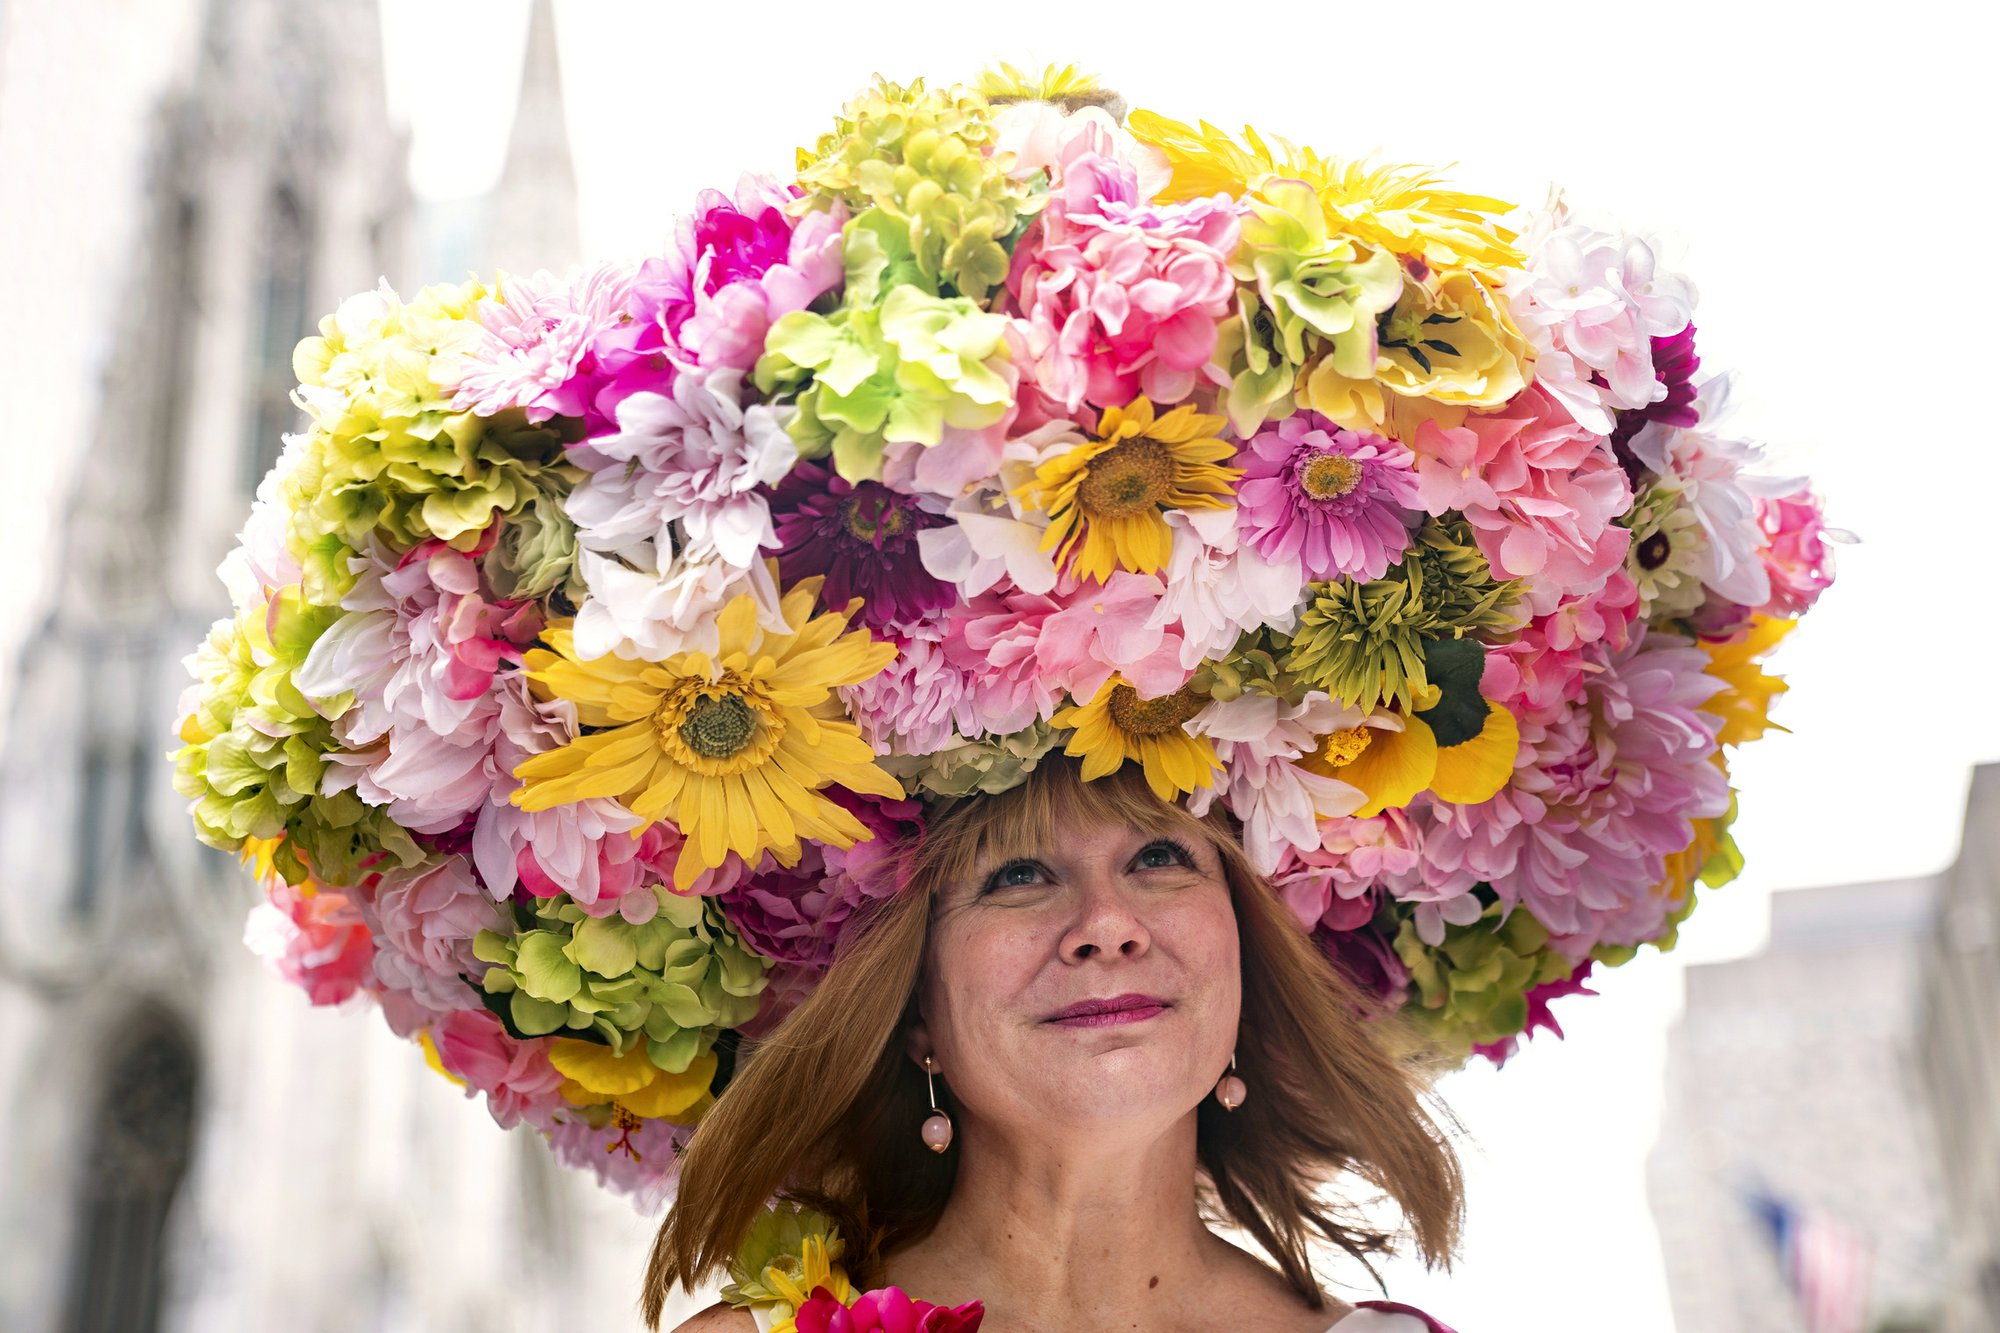 Bonnets, costumes on display at NYC's Easter Parade